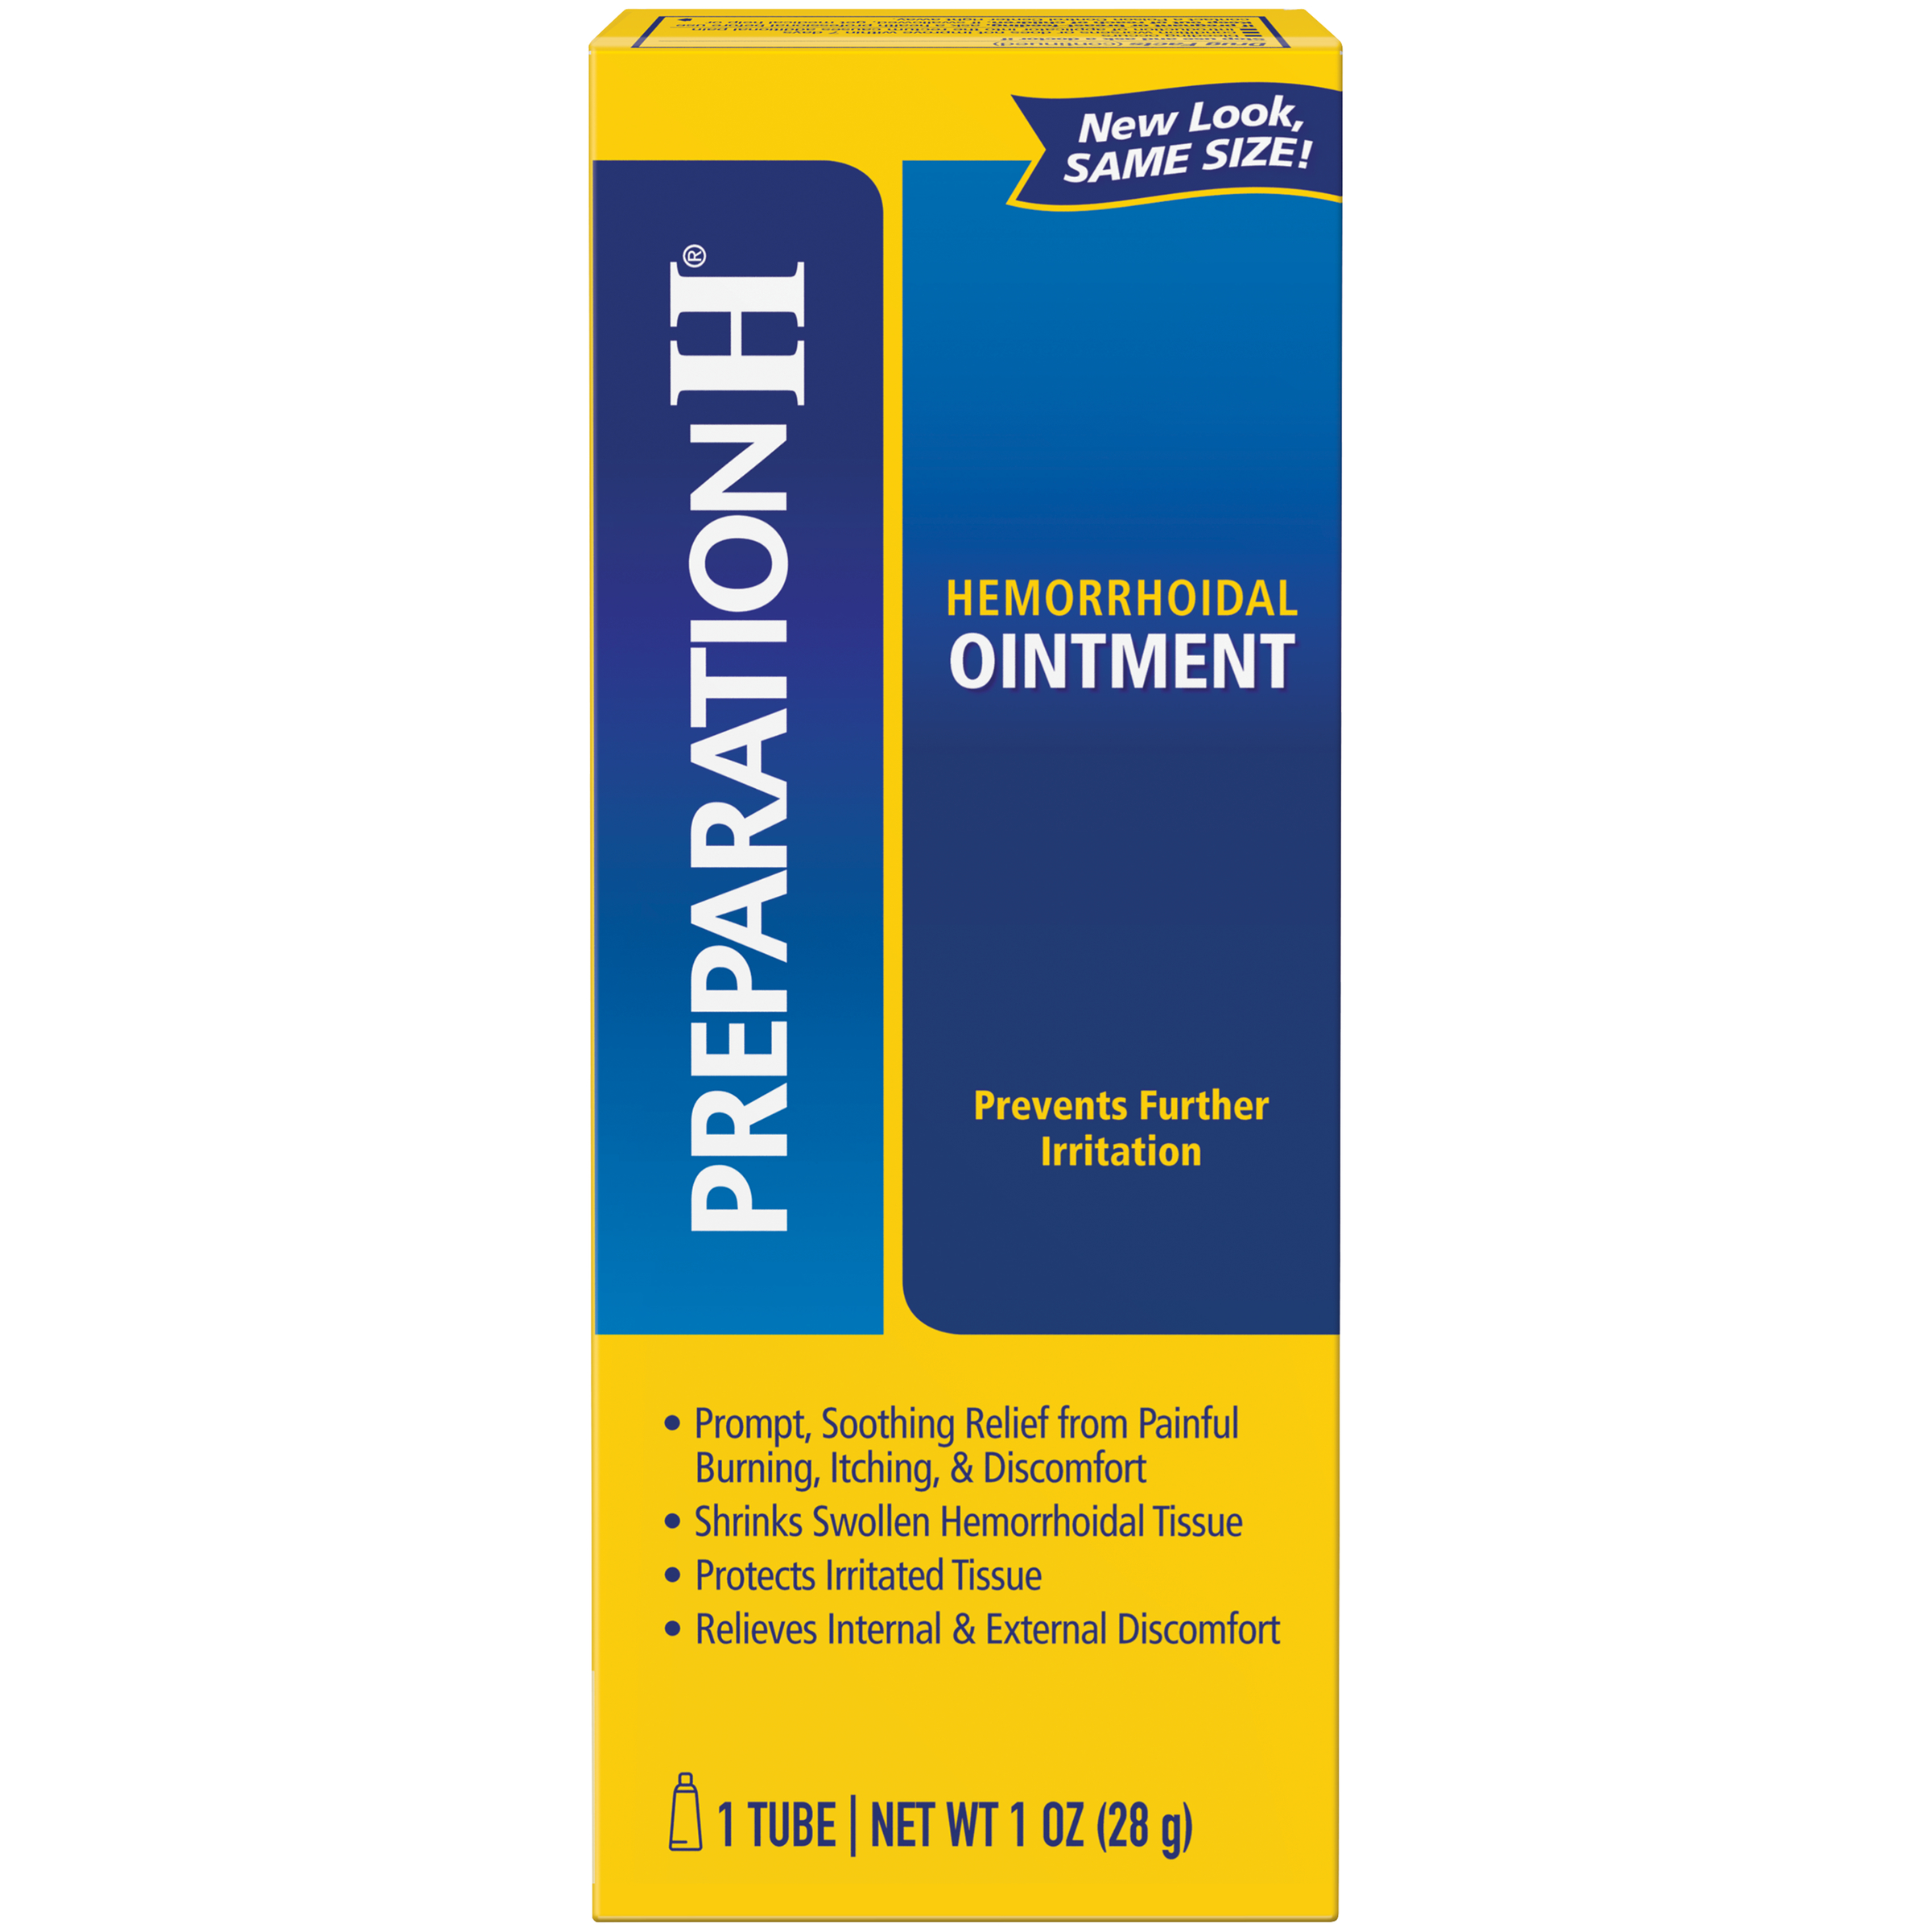 Preparation H Hemorrhoid Symptom Treatment Ointment, Itching, Burning and Discomfort Relief, Tube (1.0 Ounce)